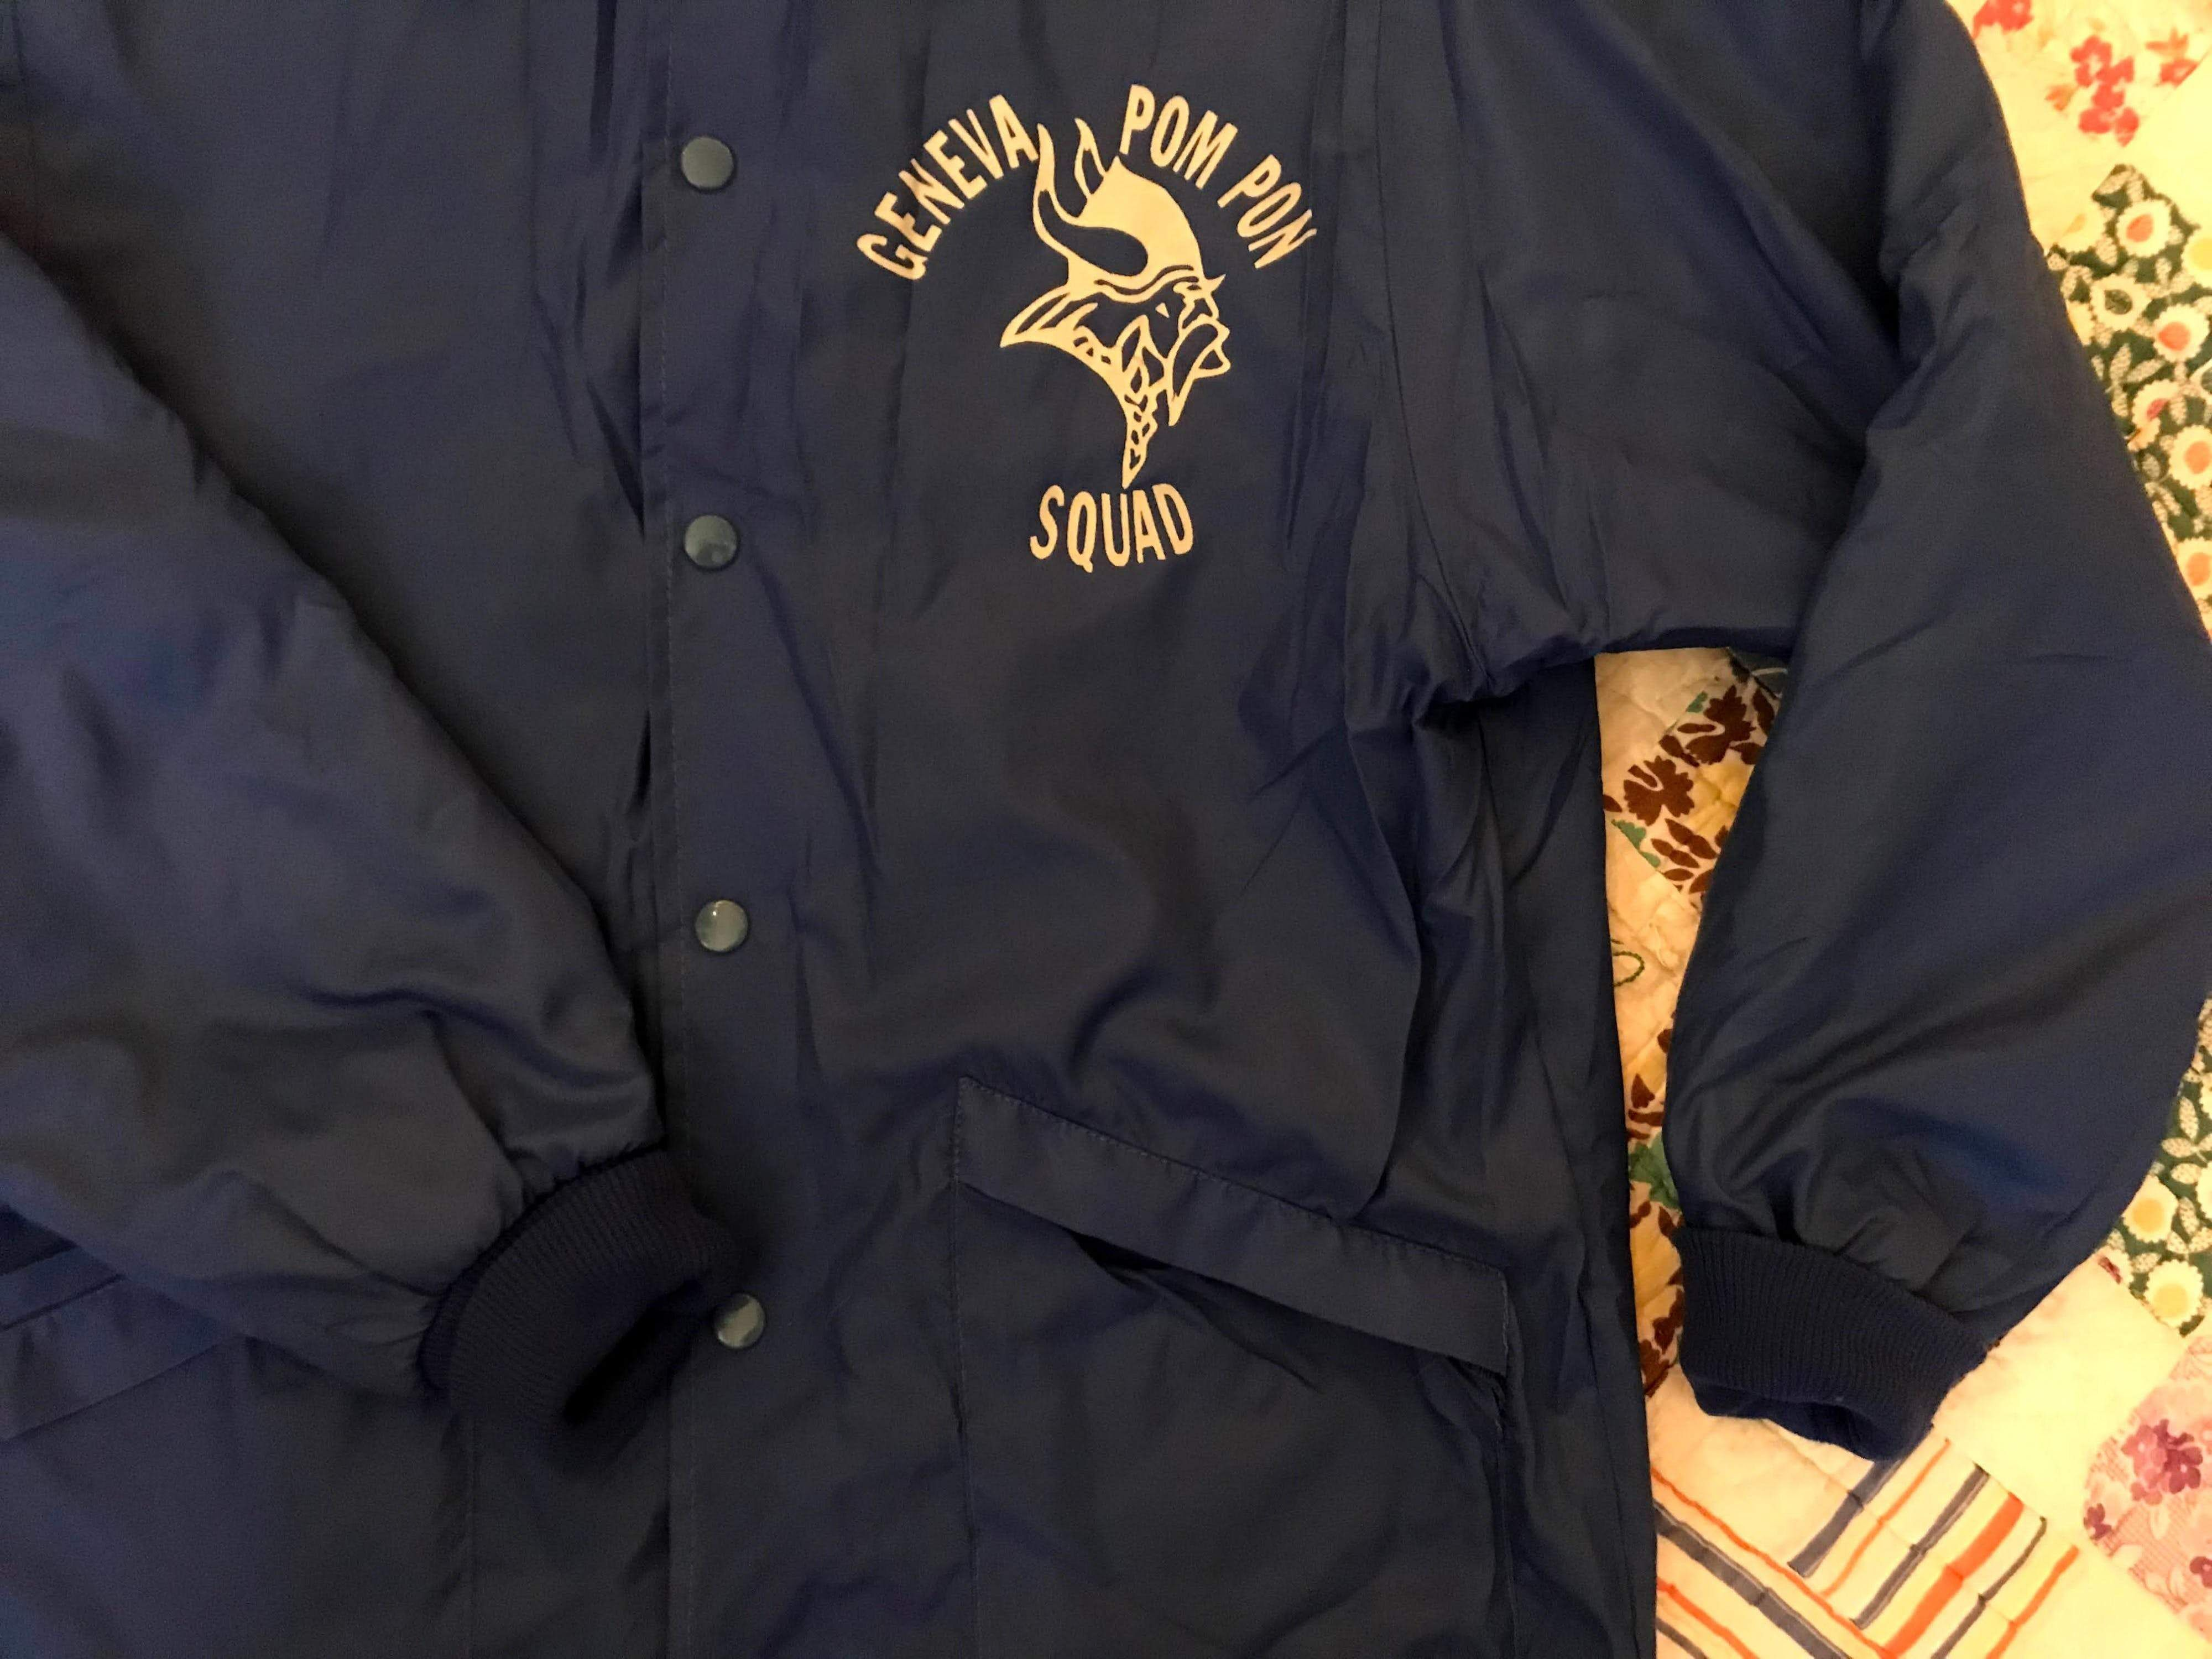 Great little windbreaker fully lined with fleece on the inside and a nice little collar. I love these old jackets and bowling shirts by Hilton, a must in any vintage collector's closet. A bit boxy and oversized. Super cool viking graphic on the front. Made in USA. Condition:Great vintage condition, but pocket may need reinforcement in the future. See photosMaterial❉ 100% nylon shell❉ 85% acetate❉ 5% nylon flannel lining🌵 Size:❉Modern unisex medium/large❉ 19.5 inches pit to pit laid flat (39 inc